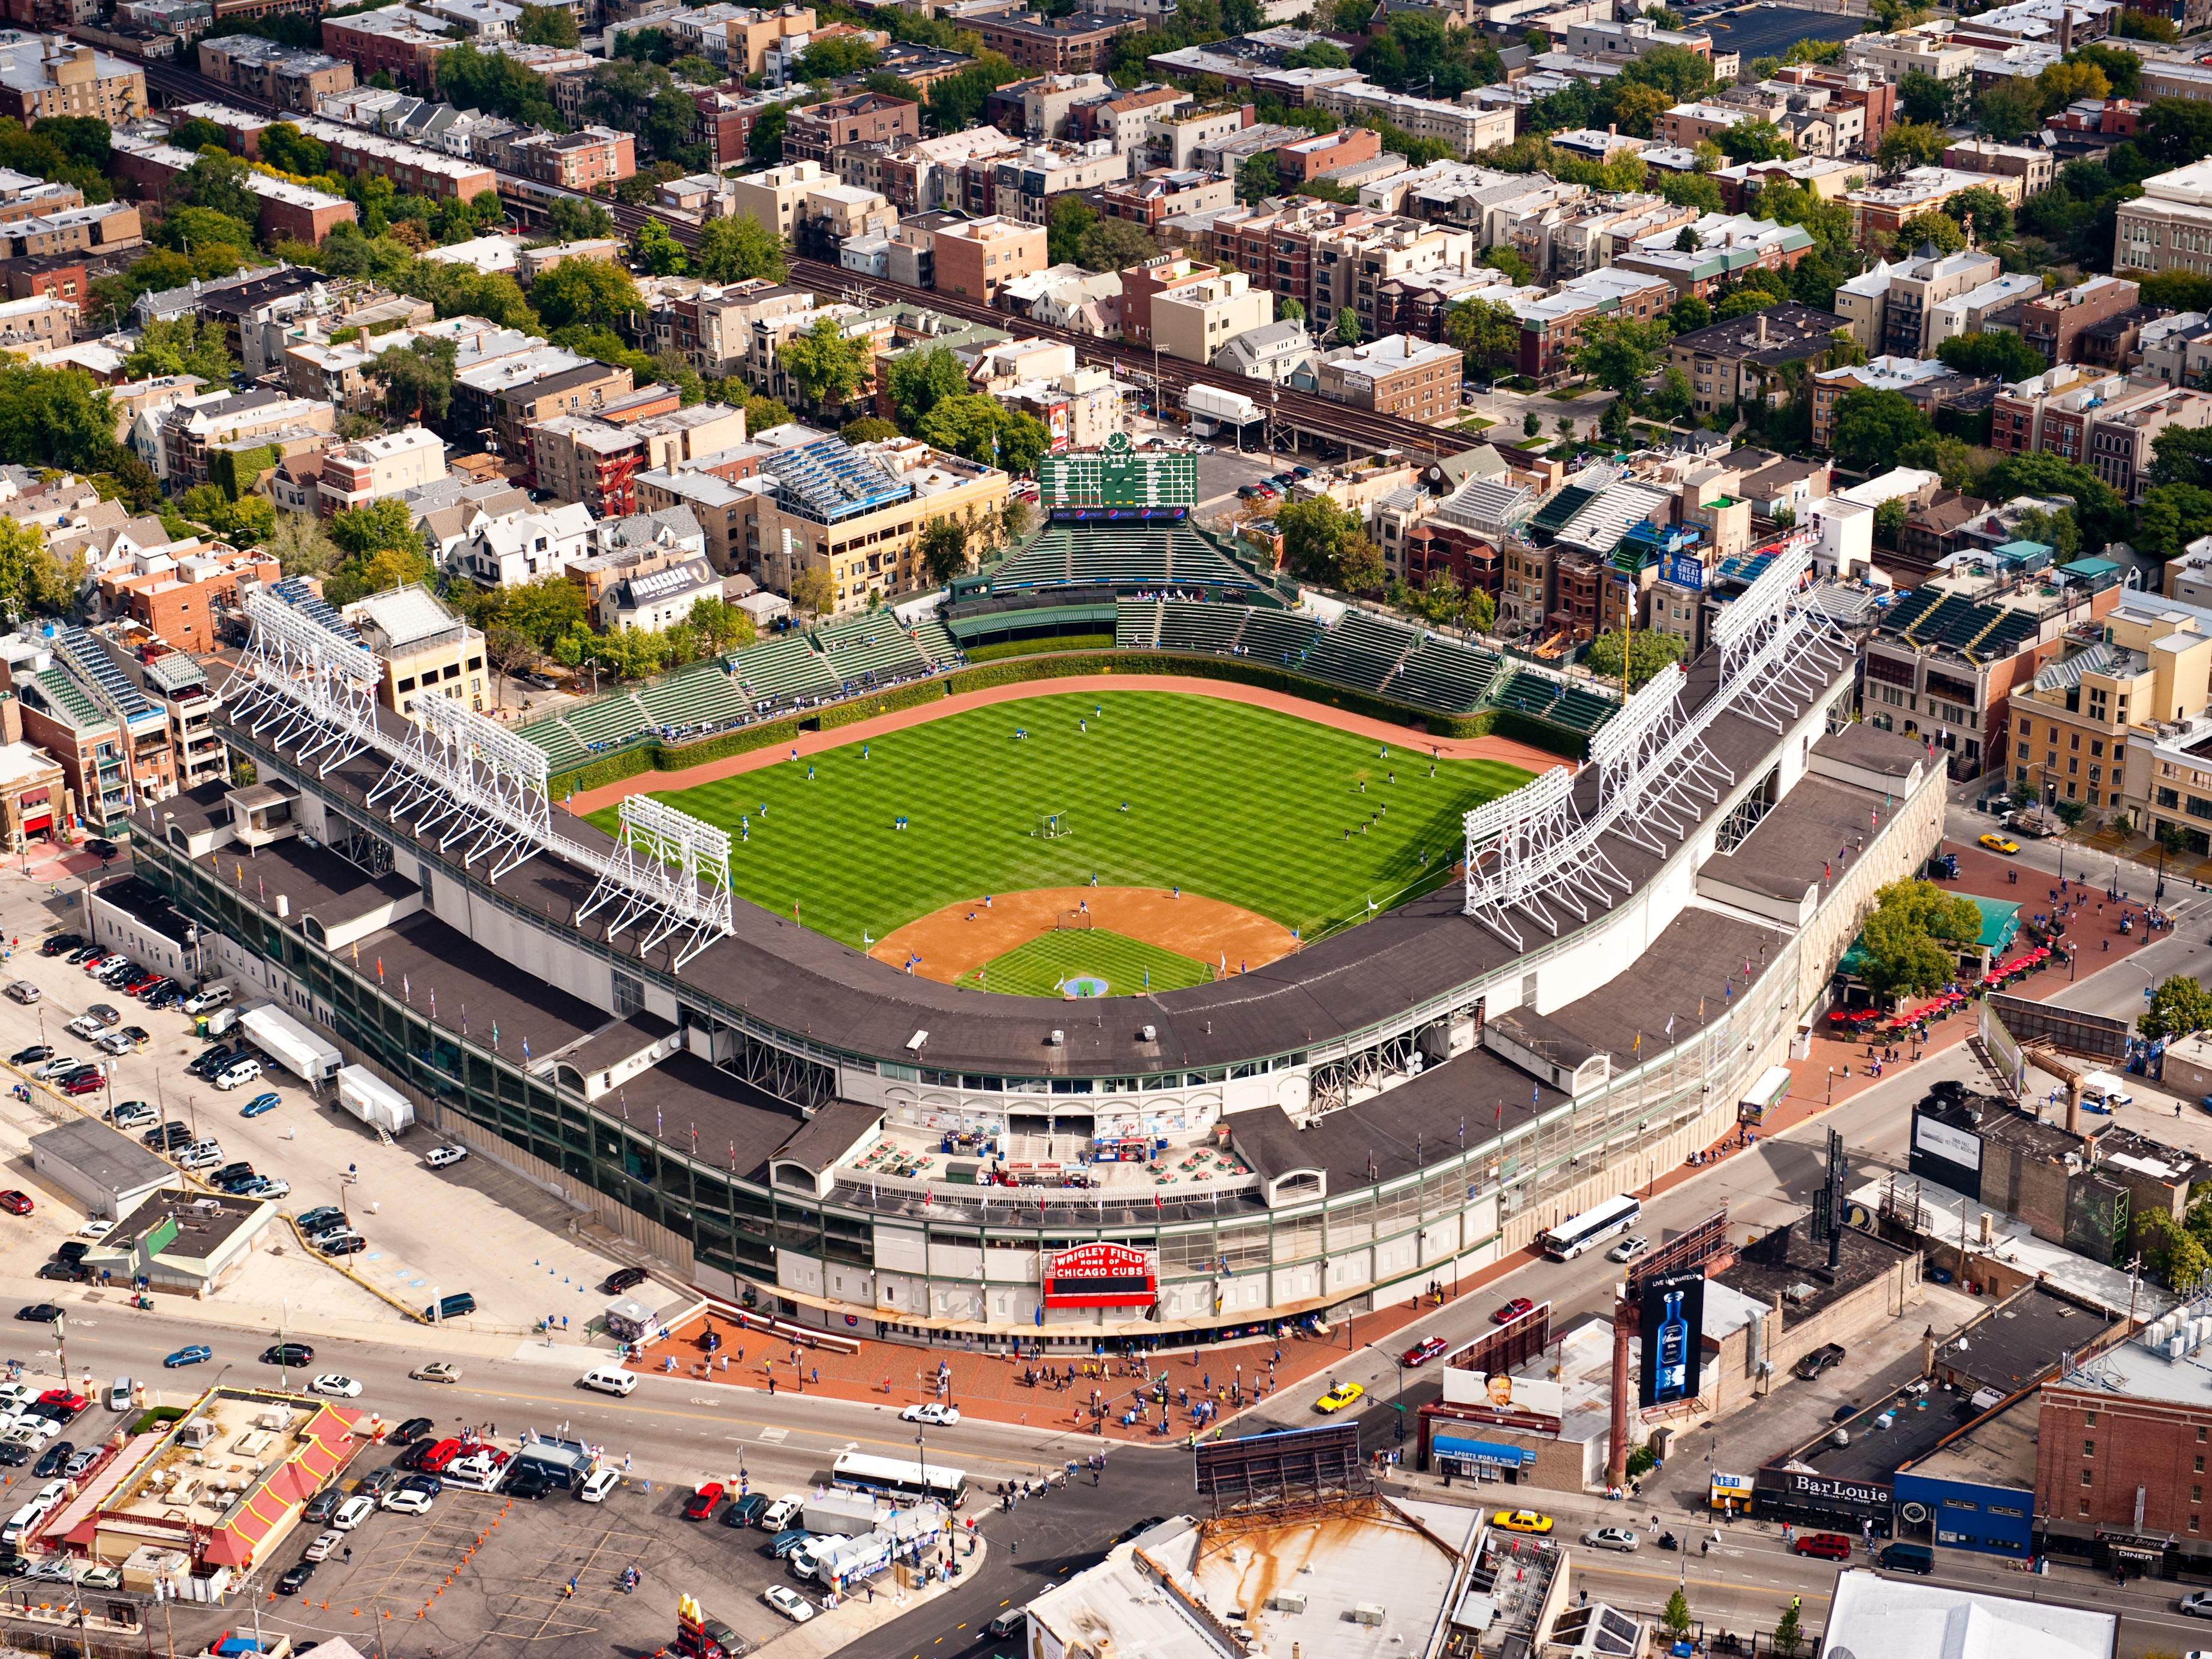 Chicago Cubs baseball at Wrigley Field Chicago, Illinois